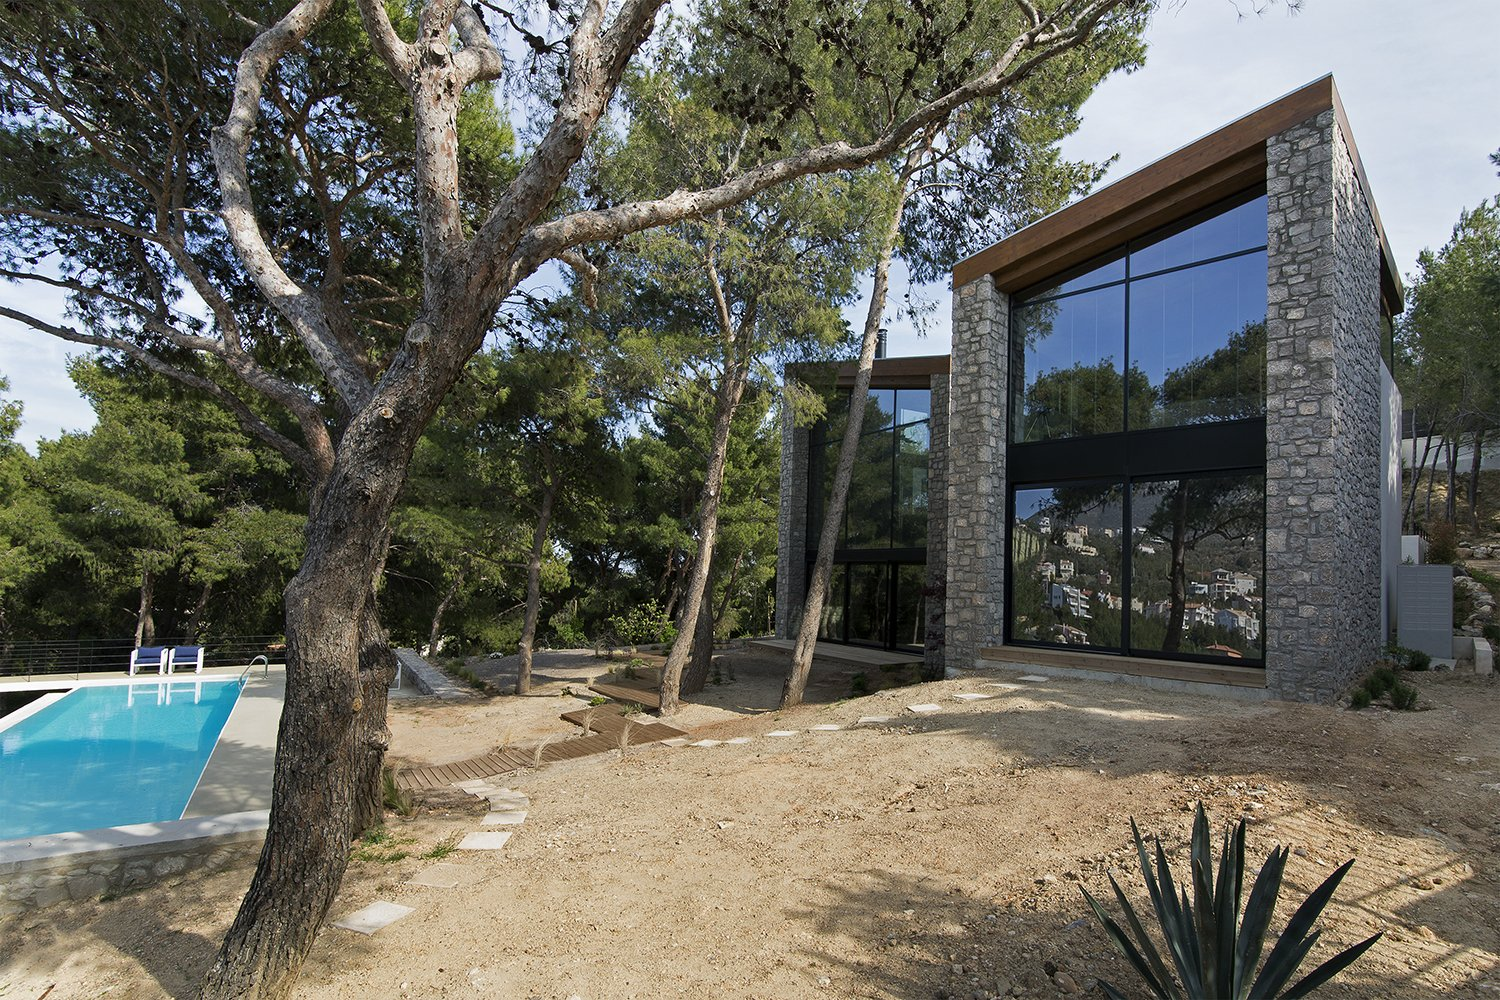 Both facades completely open up through large glazing surfaces to the view of the pines trees and the hills beyond Tagged: Exterior, Stone Siding Material, Shingles Roof Material, House, and Wood Siding Material.  The Wedge House by Marianna Athanasiadou